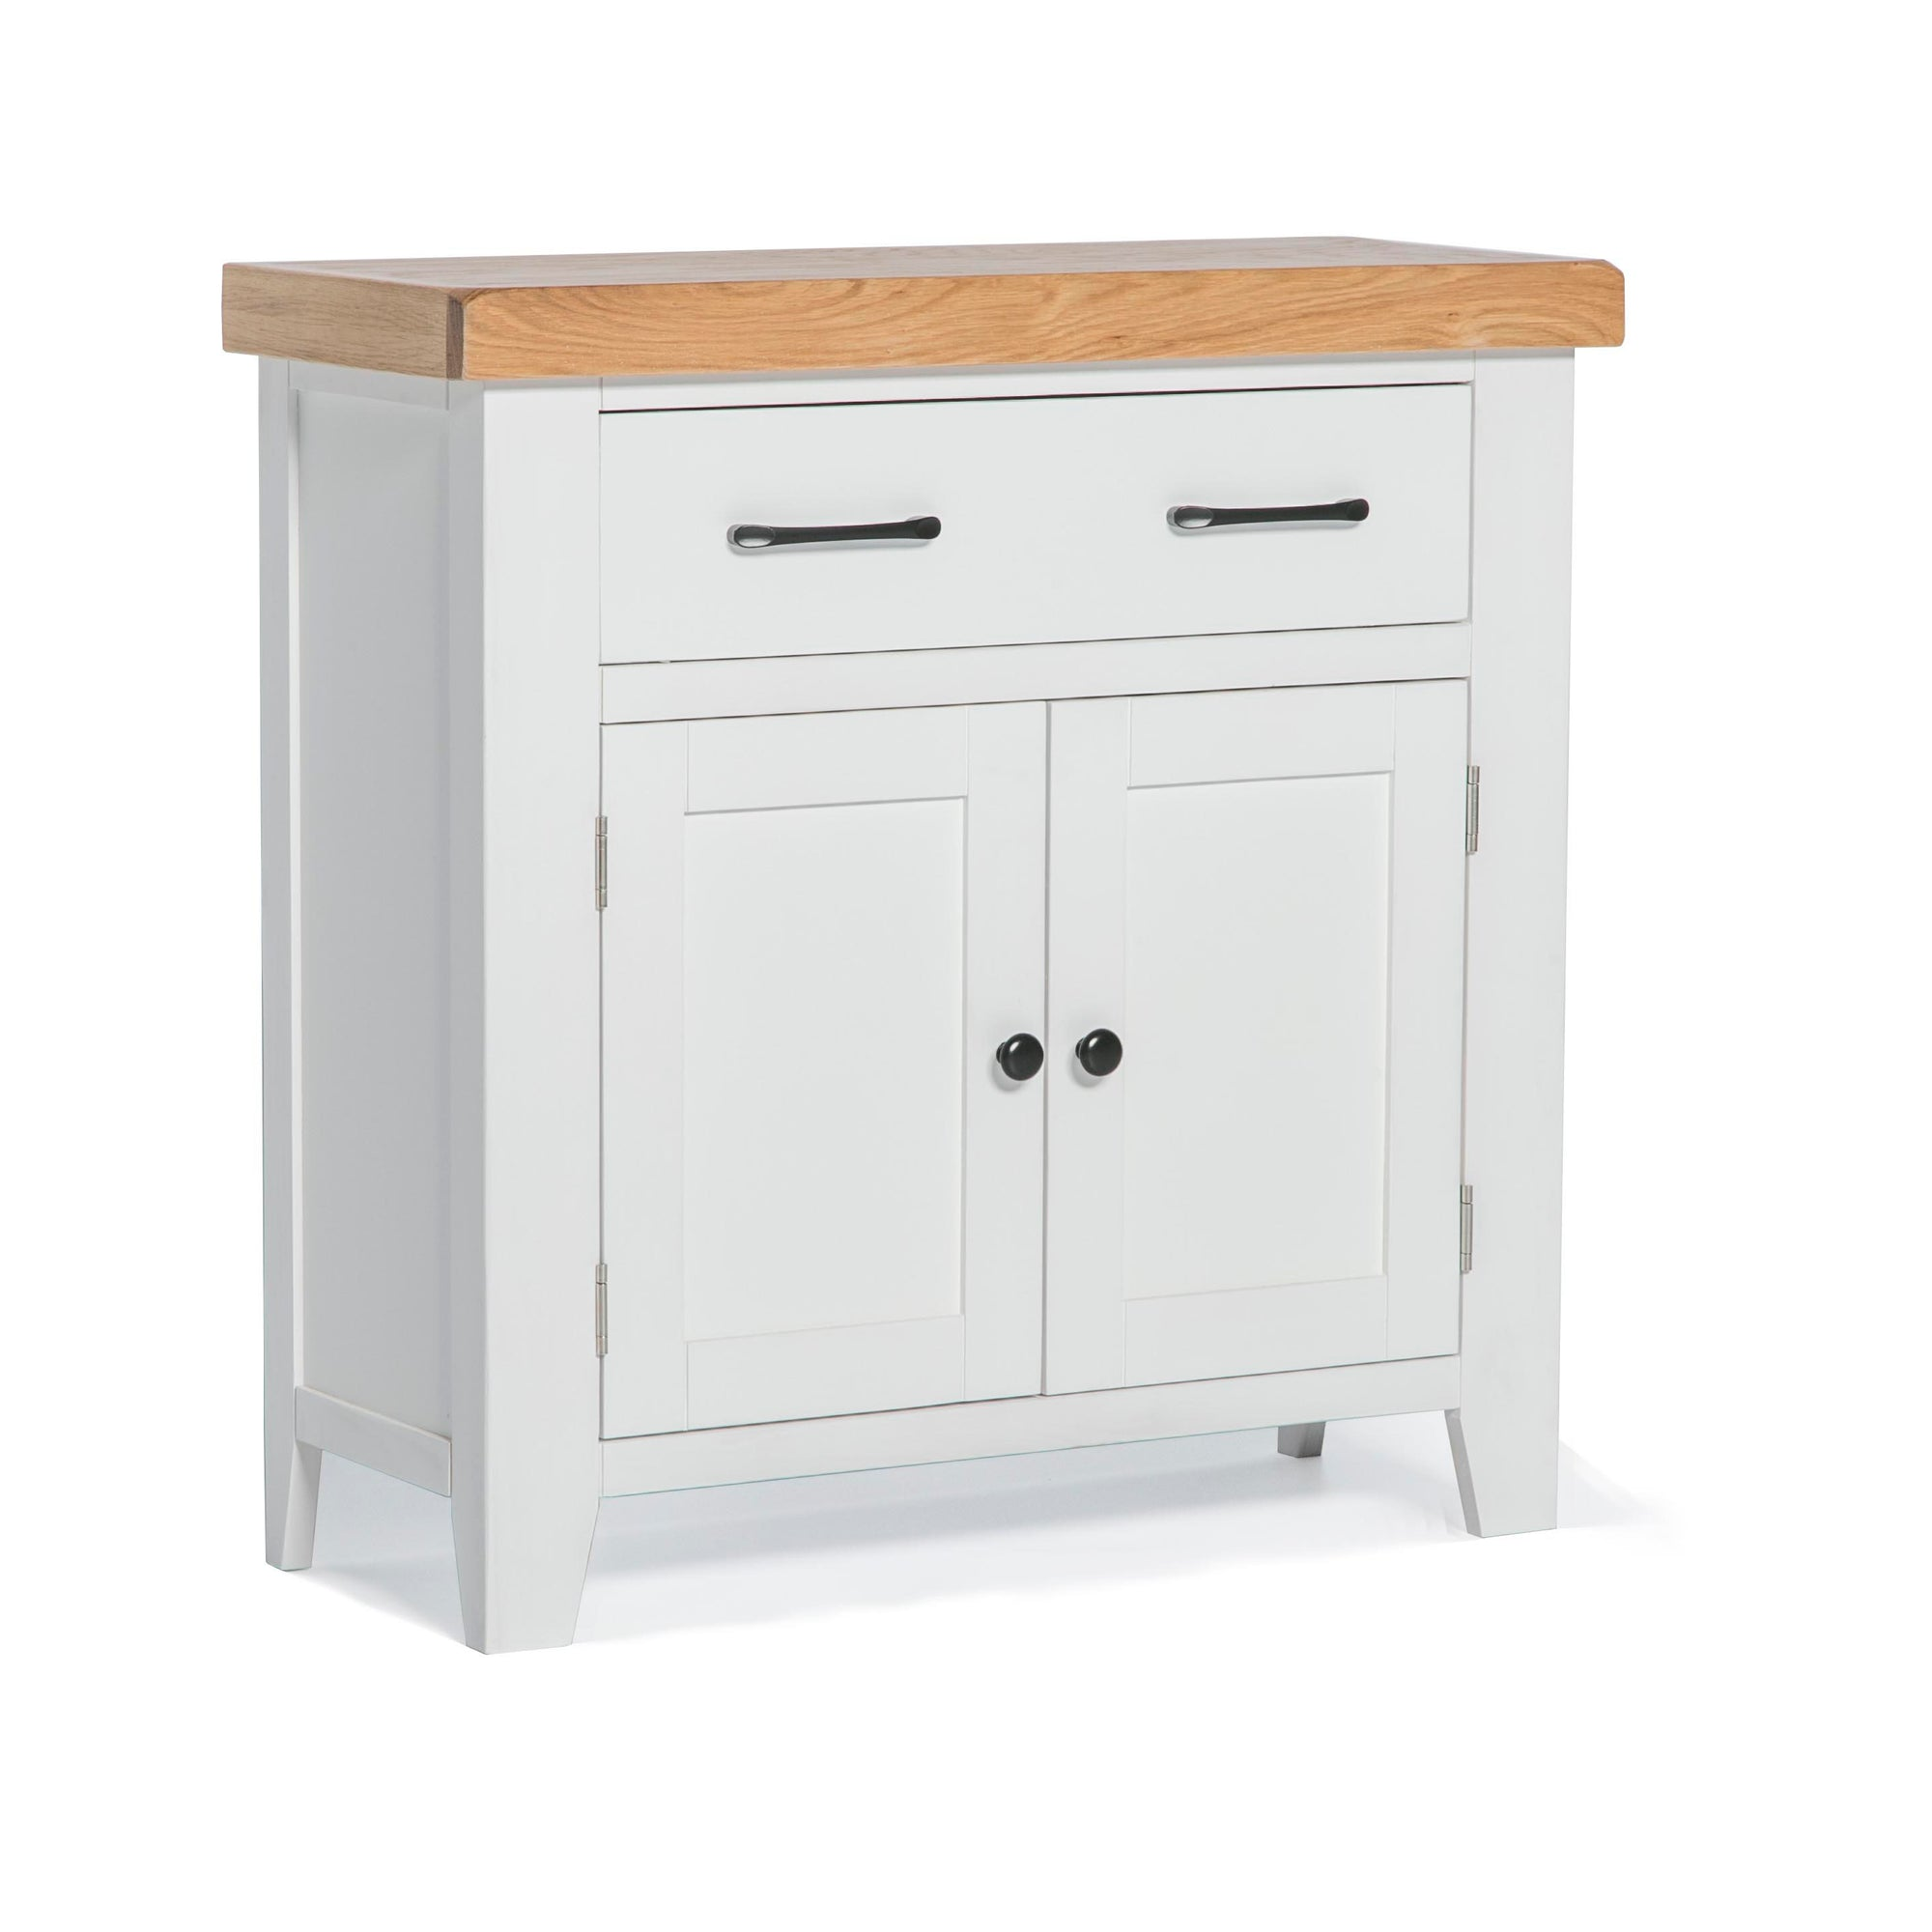 Chatsworth White Mini Sideboard by Roseland Furniture